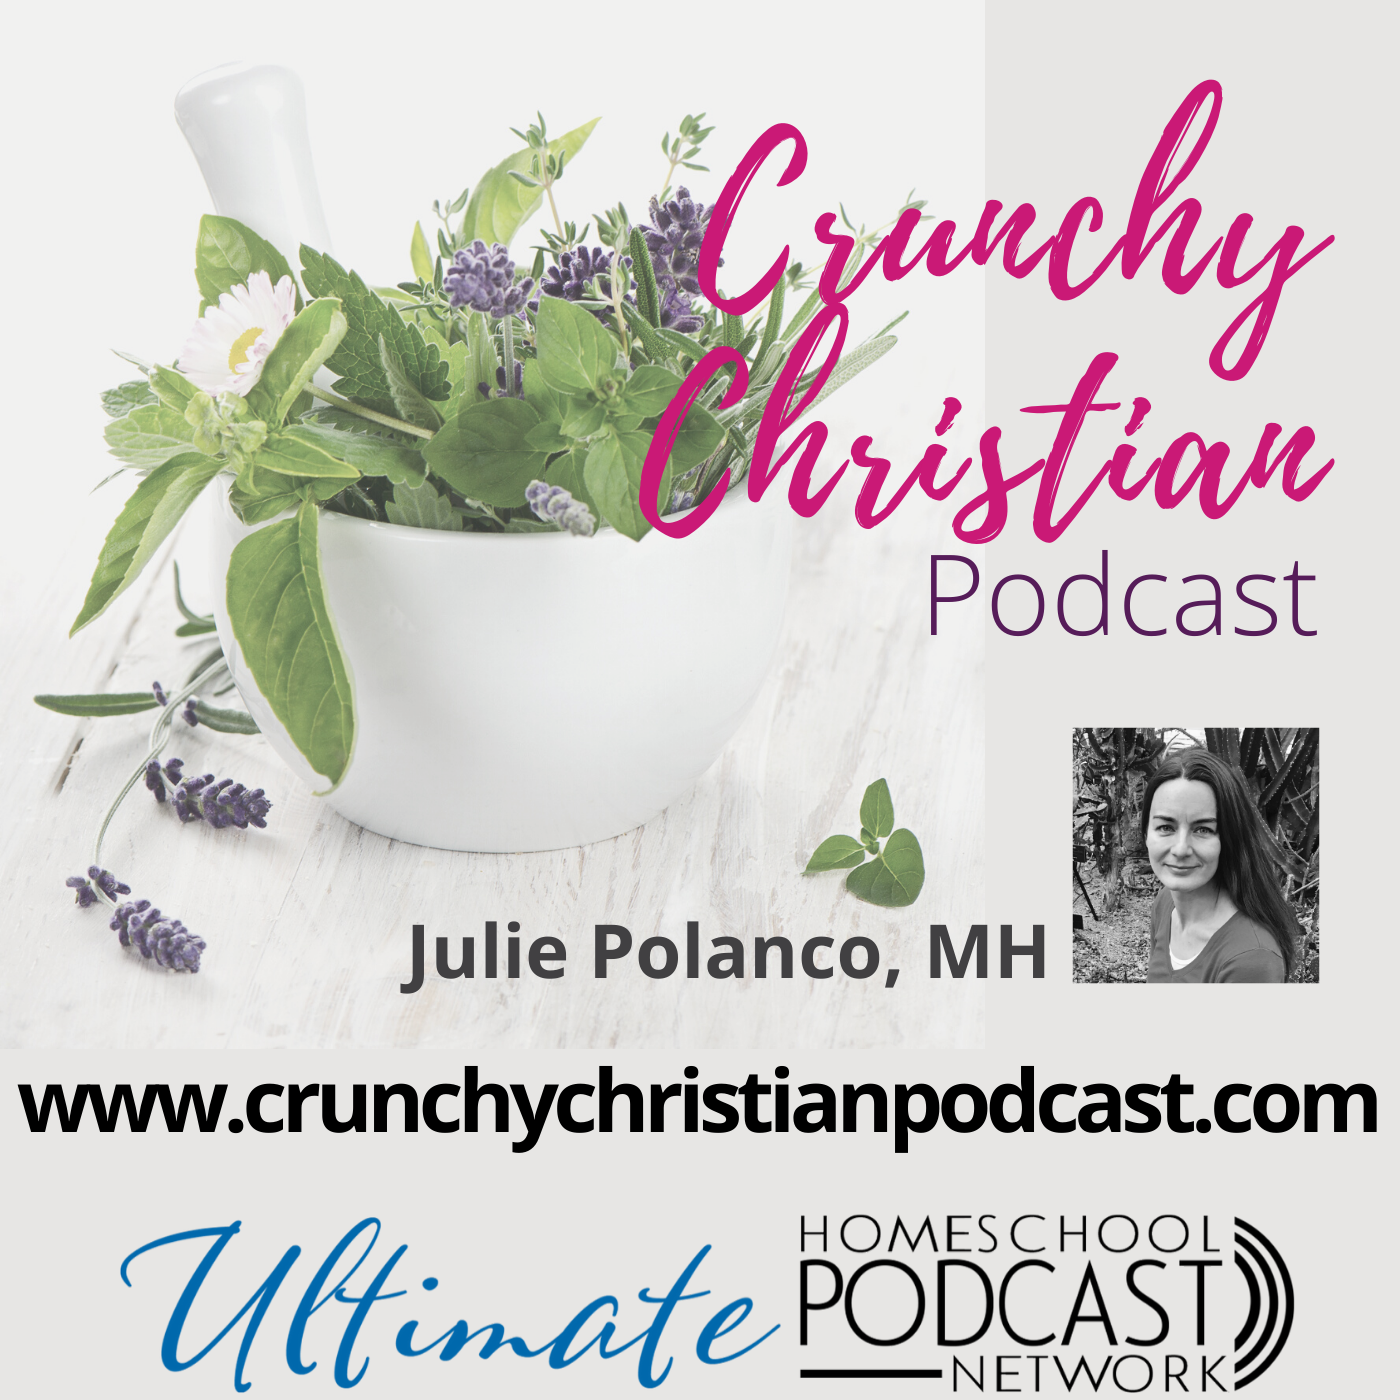 Crunchy Christian Podcast